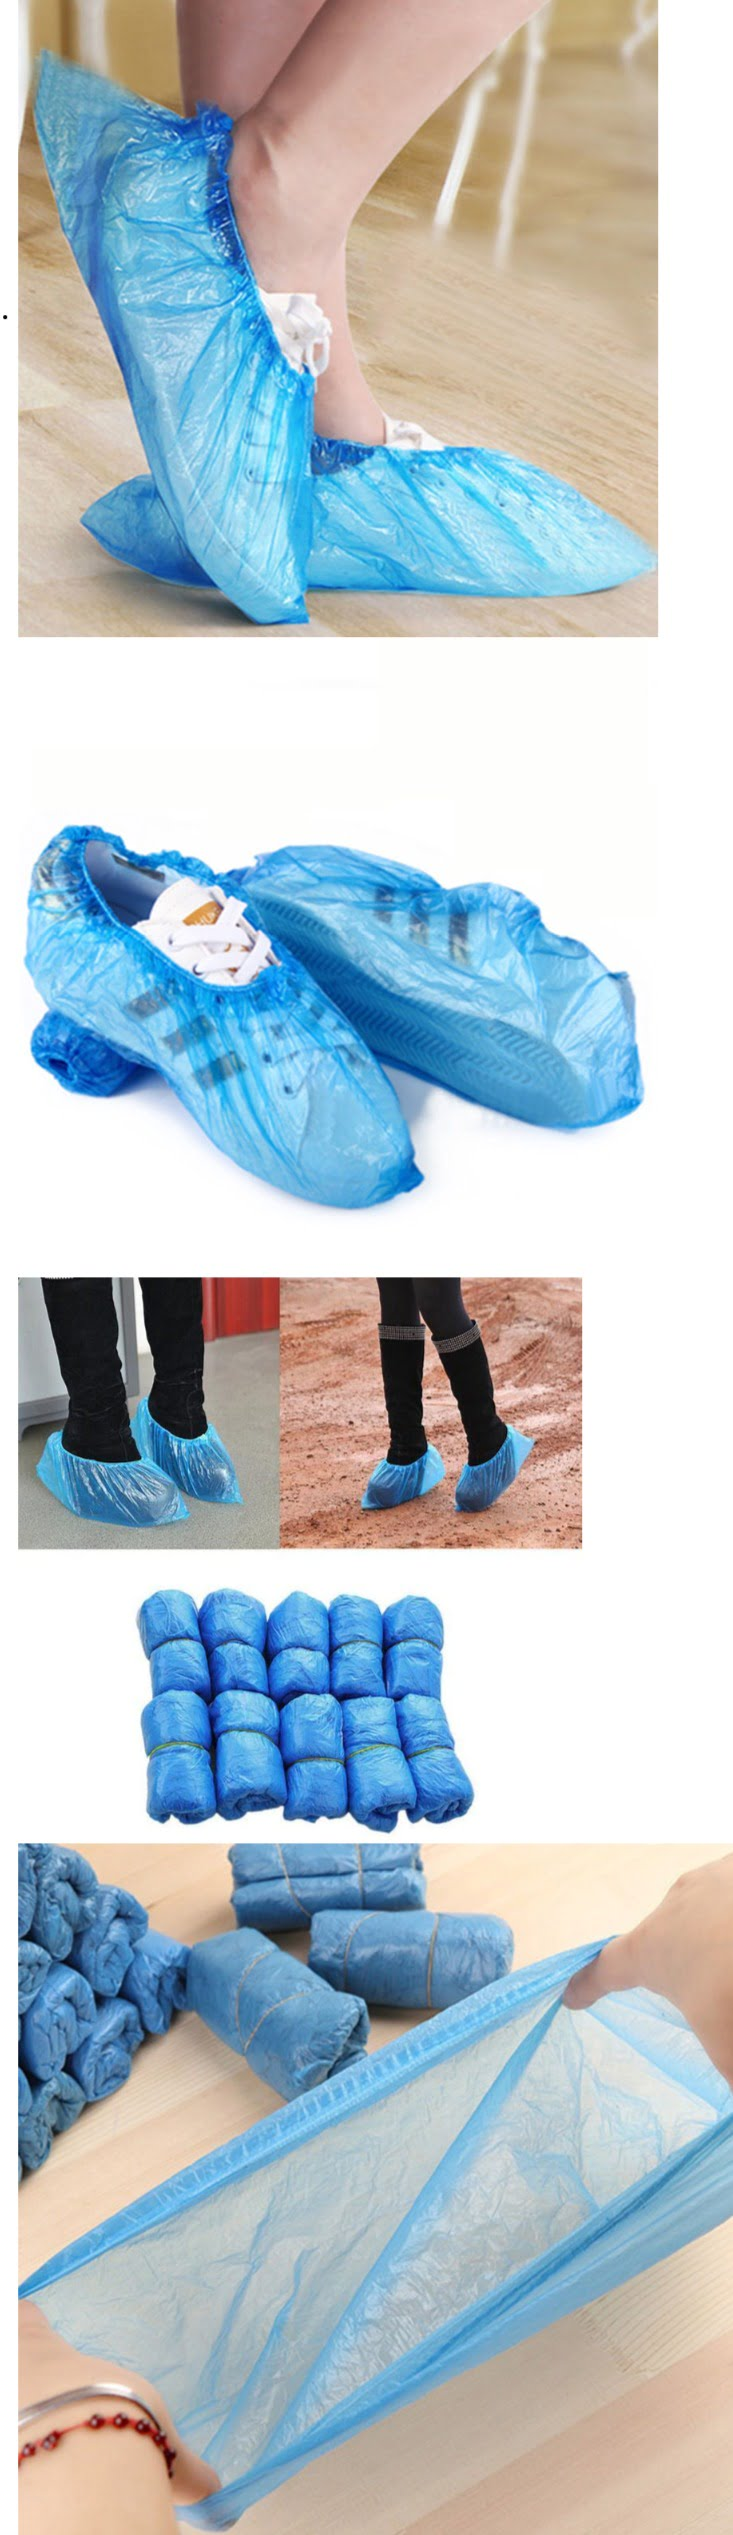 Shoe-Covers-3